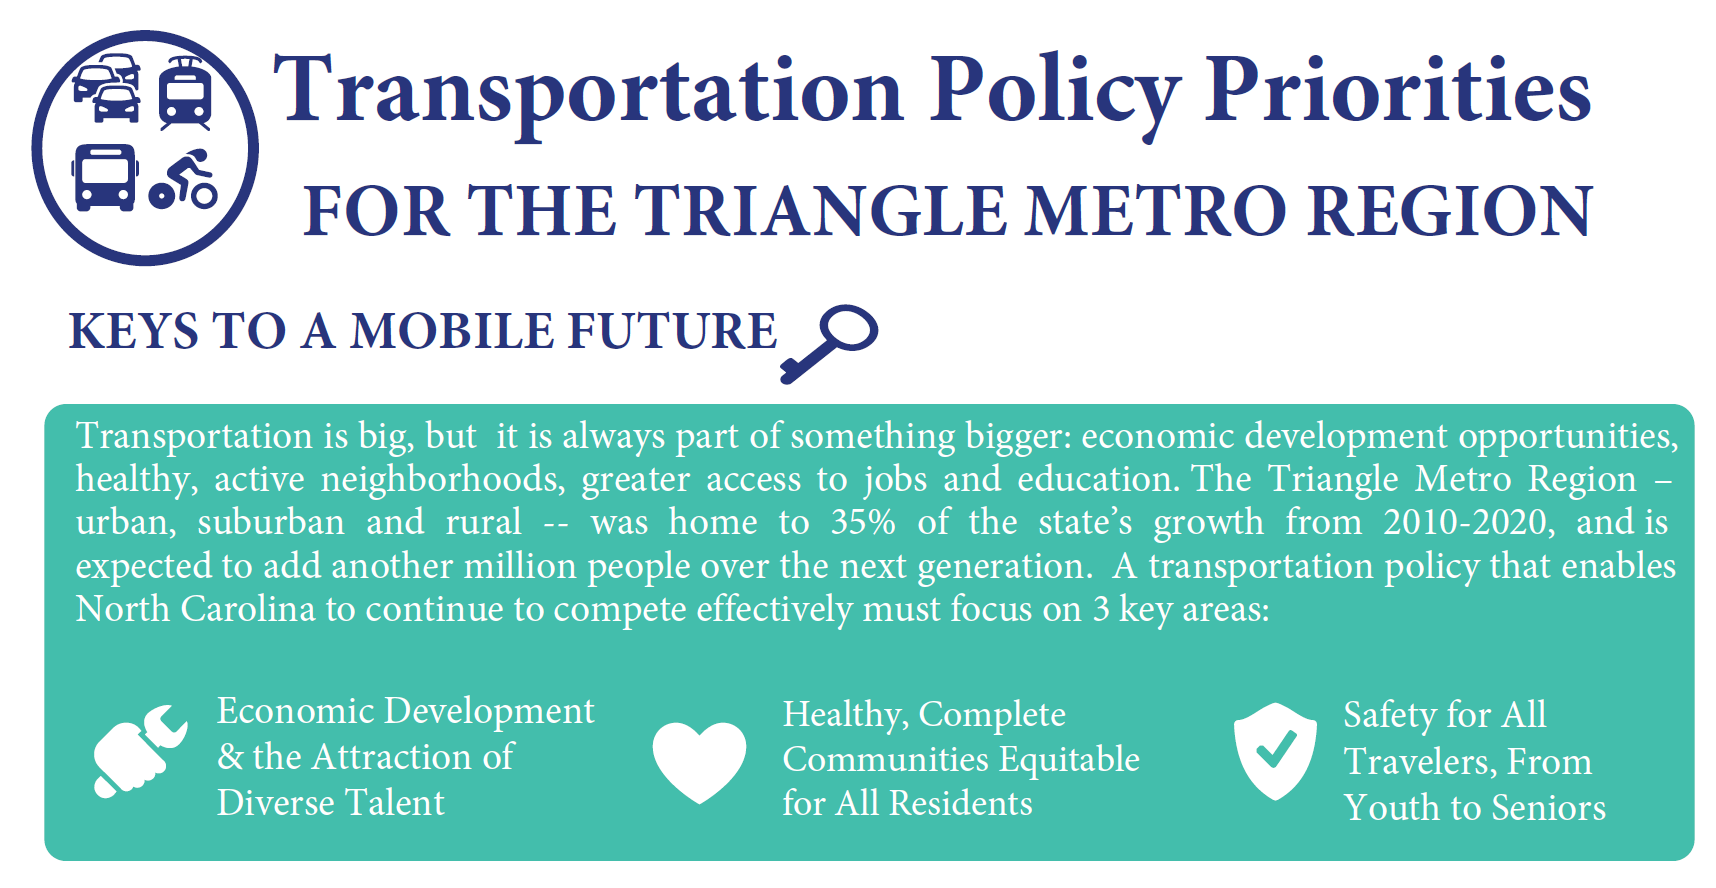 thumbnail image linking to PDF of region's transportation policy priorities